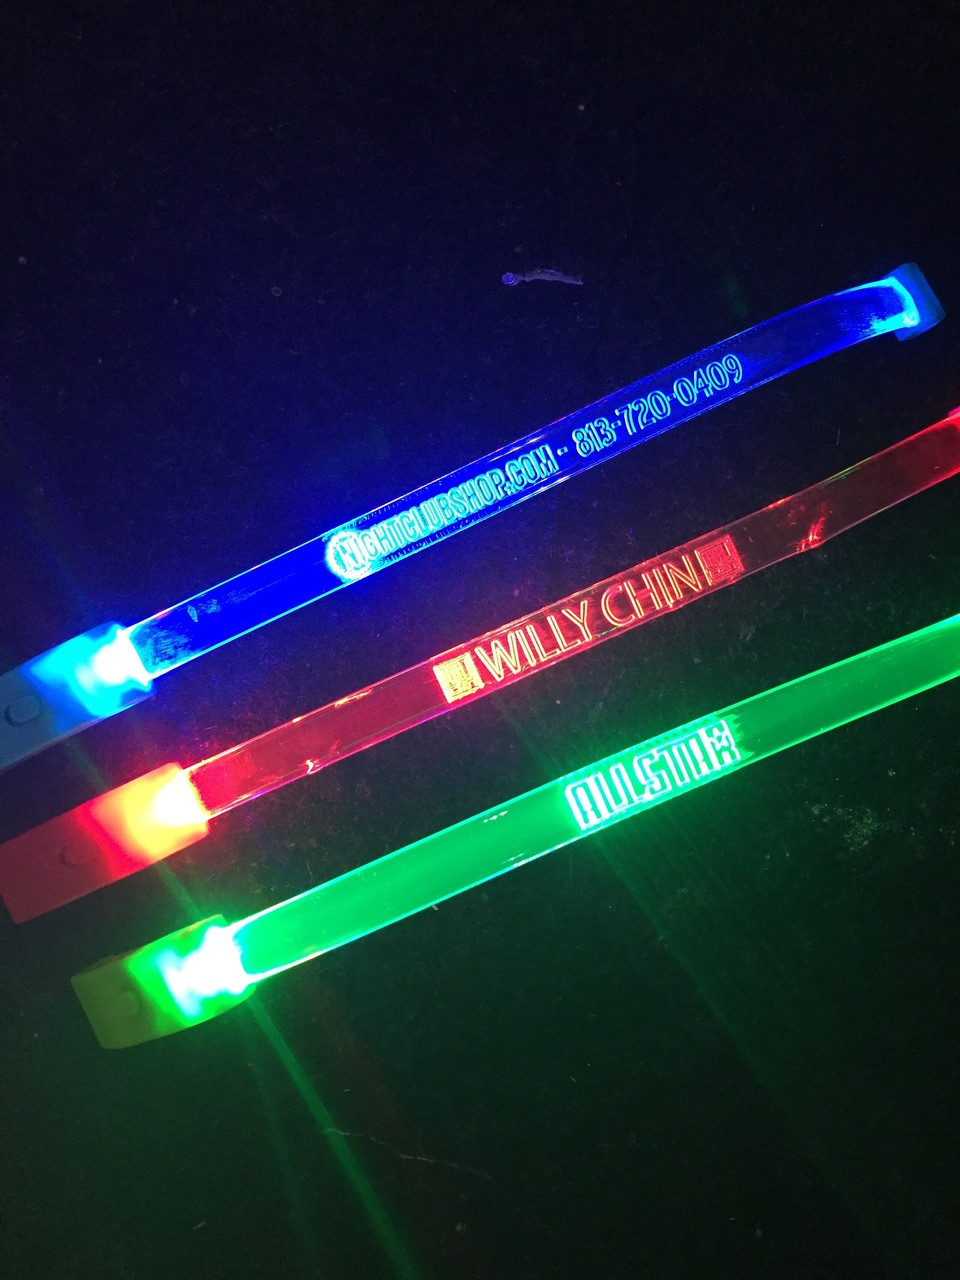 HALLOWEEN LED WRISTBANDS - PERSONALIZED - CUSTOM - Light Up Optical Engraved LED Bands - FREE SHIPPING USA